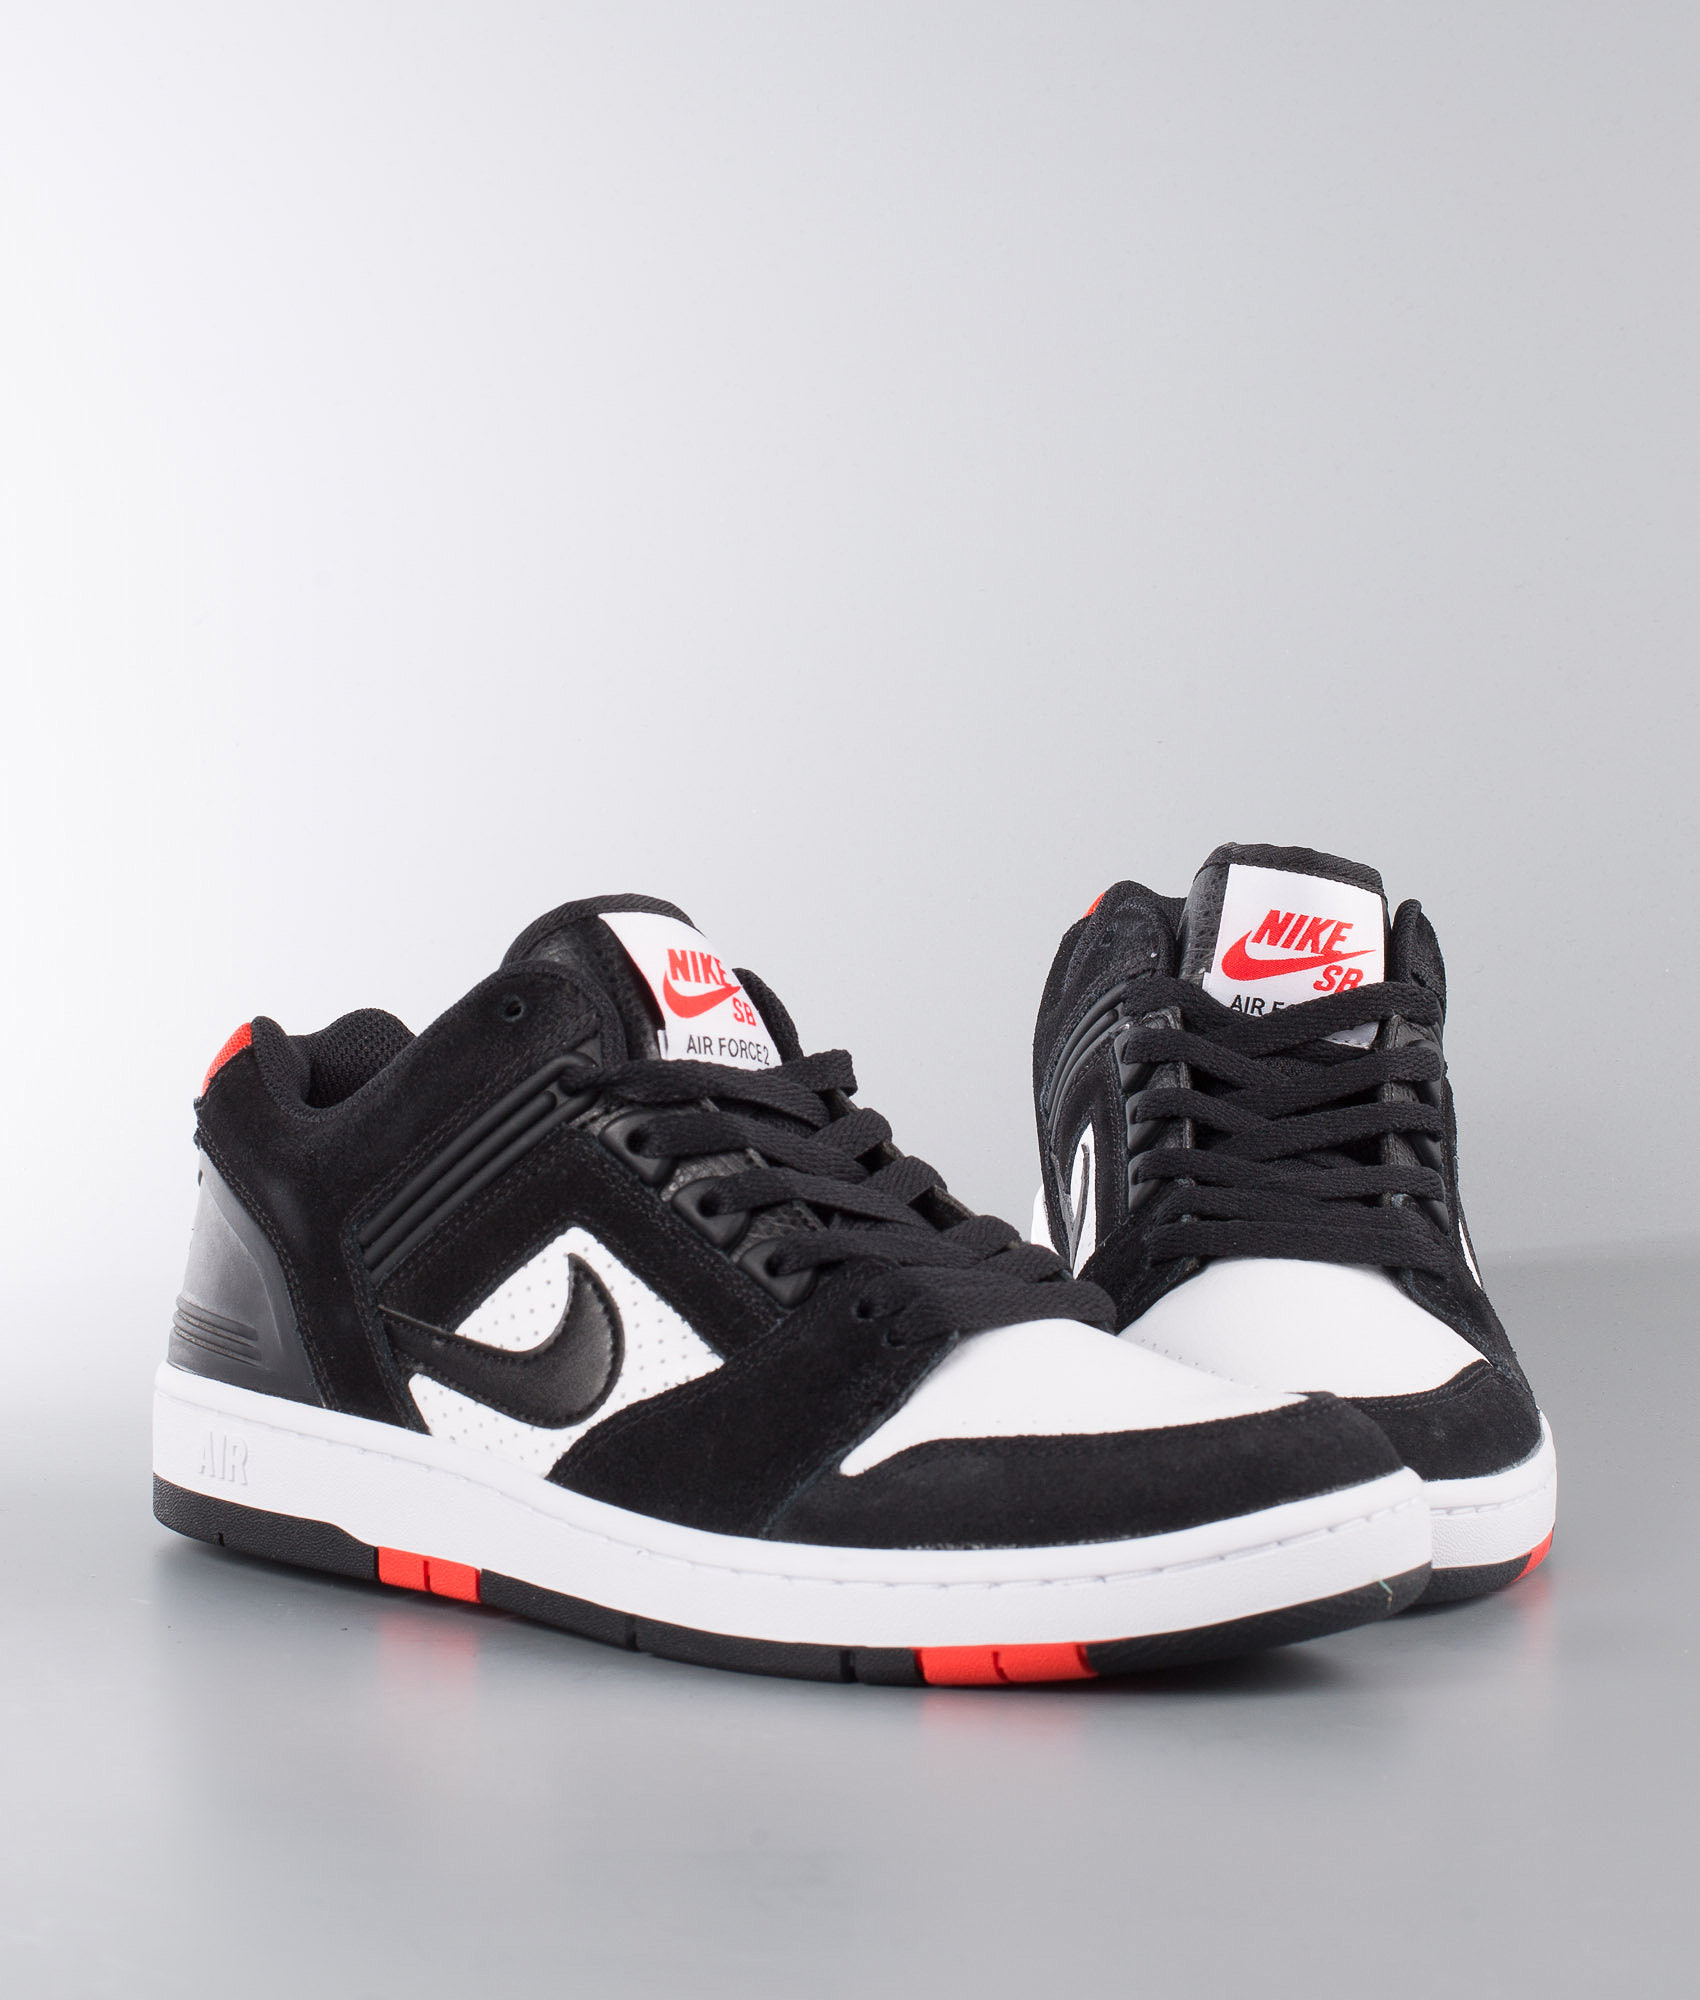 pretty nice 2a2ff 8cefe Nike Air Force II Low Chaussures